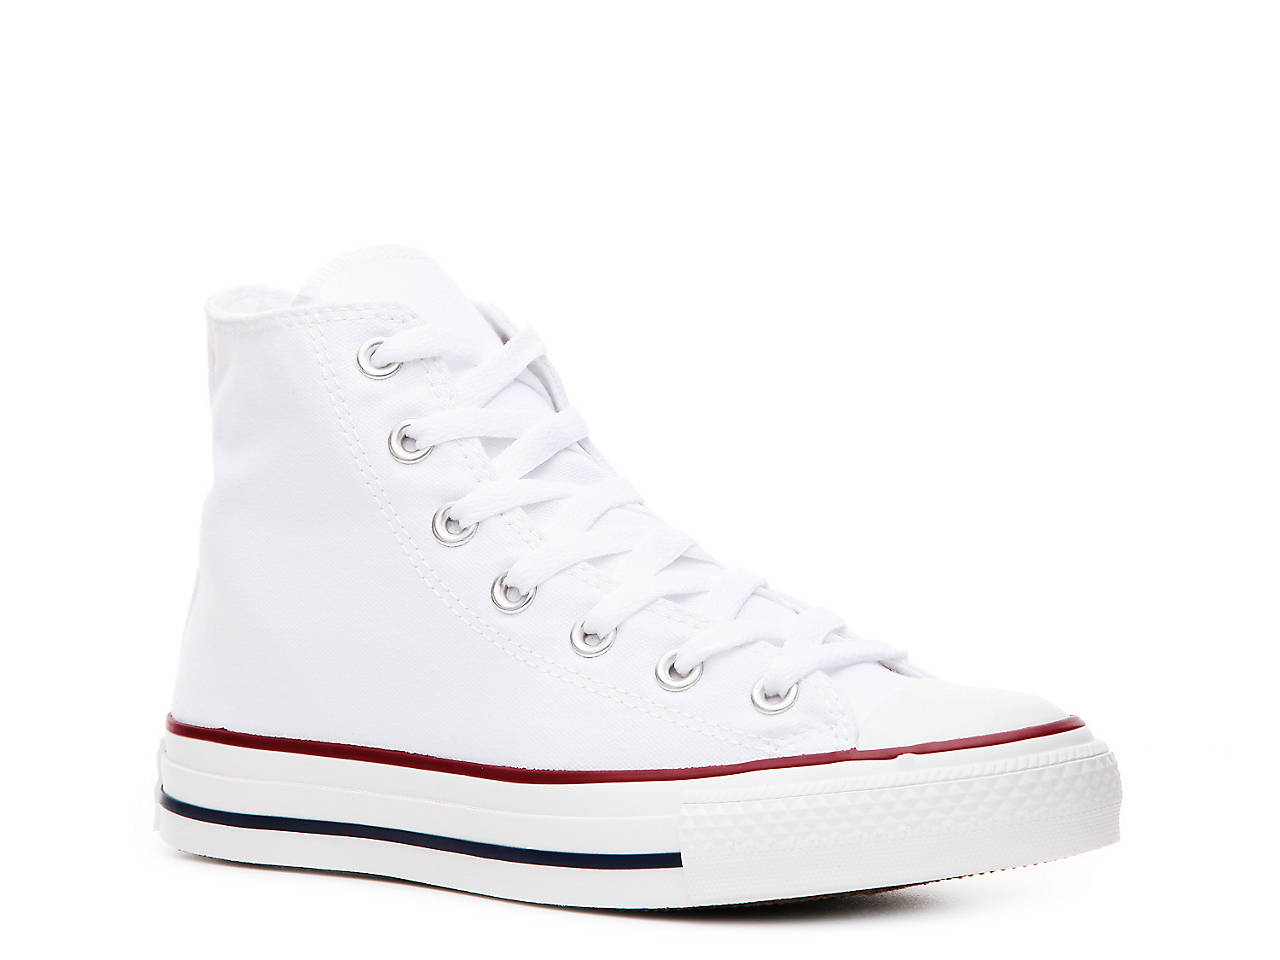 dc0e4b2553e3c4 Converse Chuck Taylor All Star High-Top Sneaker - Women s Women s ...